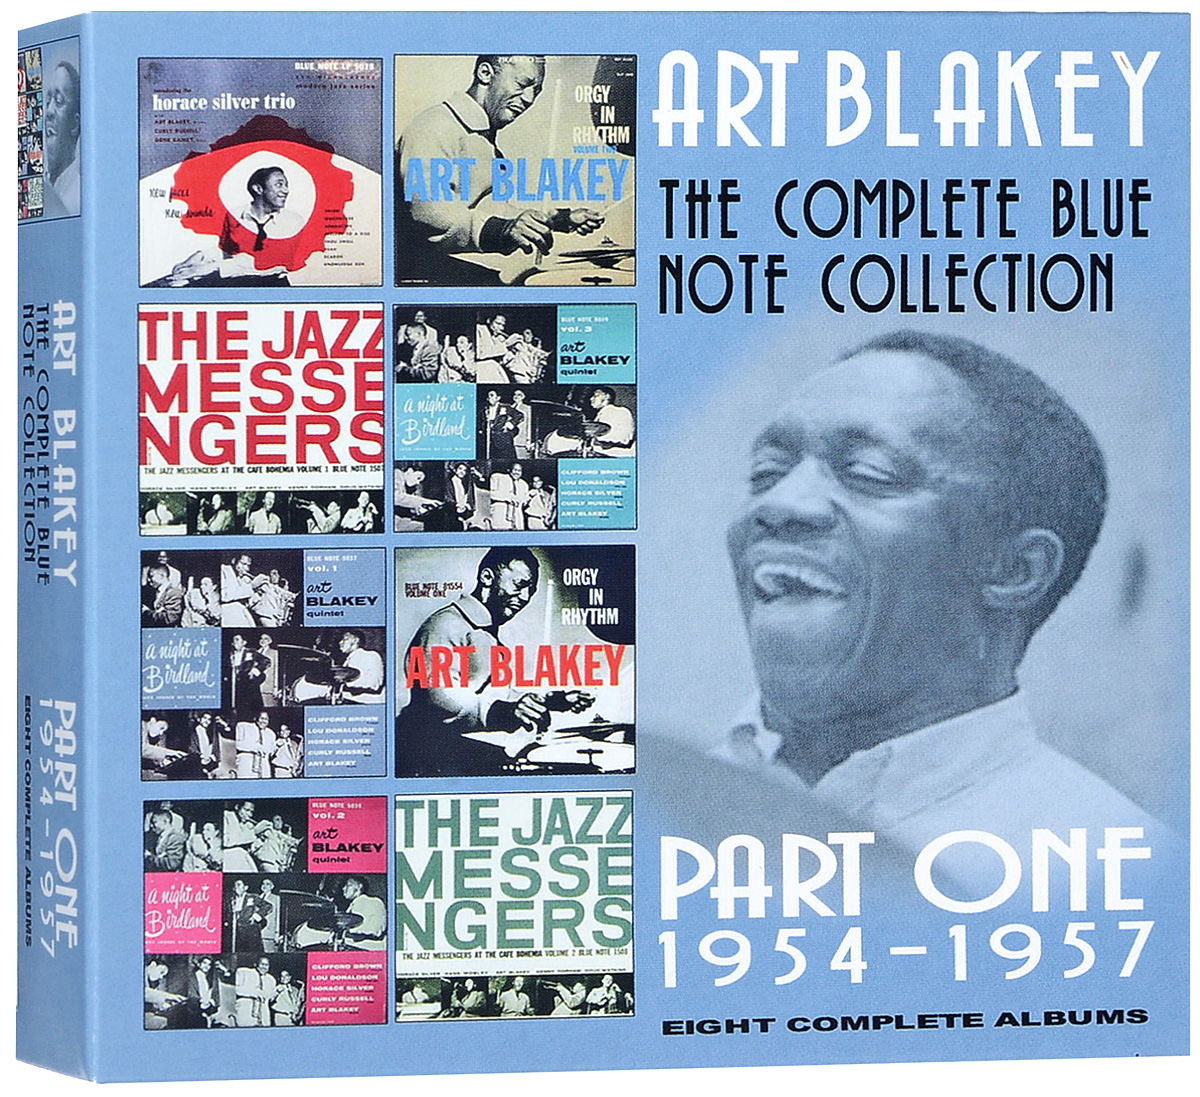 Арт Блэйки Art Blakey. The Complete Blue Note Collection Part One 1954-1957. Eight Complete Albums (4 CD) cd billie holiday the centennial collection